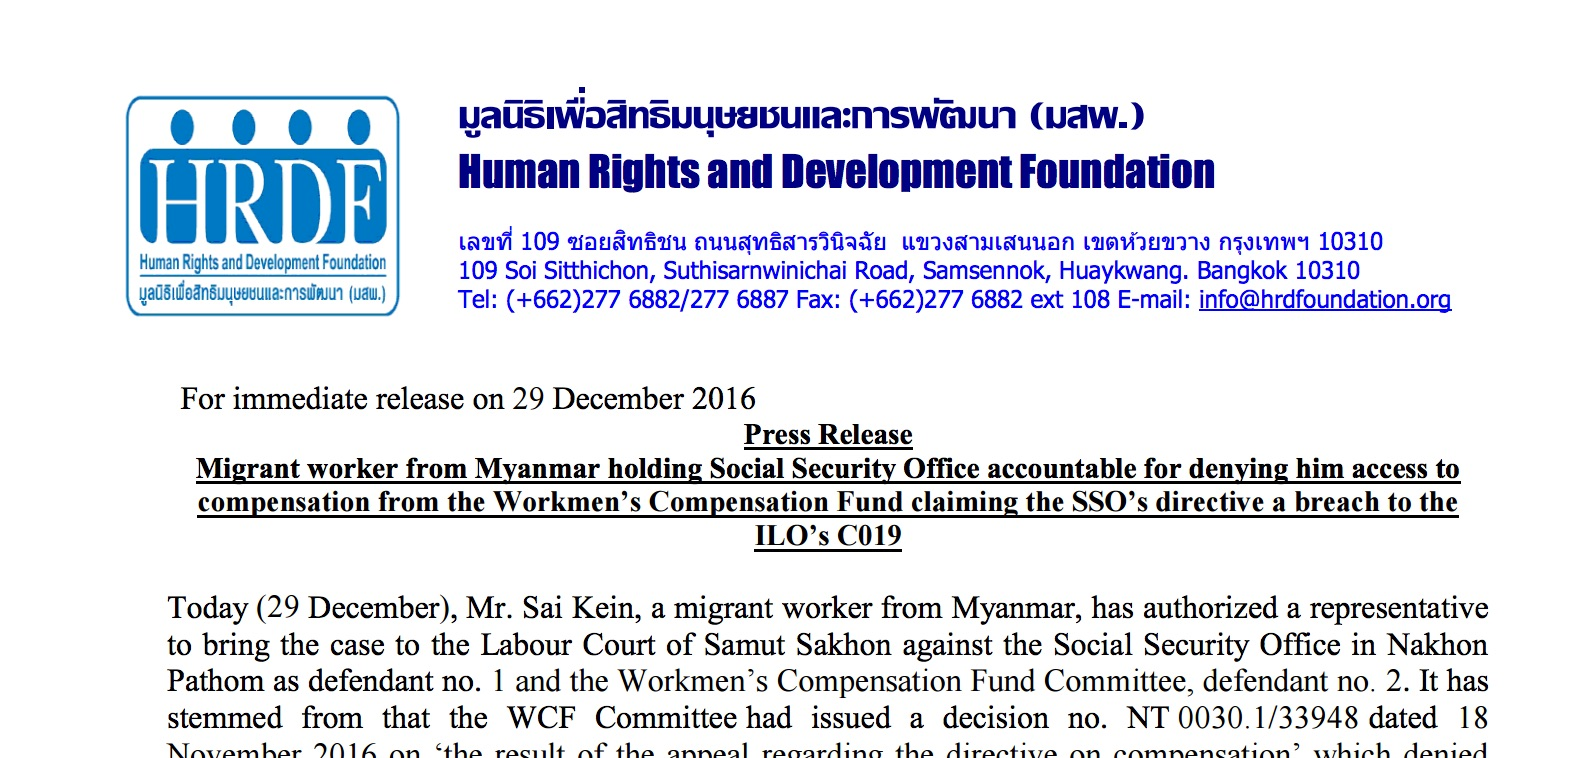 Migrant worker from Myanmar holding Social Security Office accountable for denying him access to compensation from the Workmen's Compensation Fund claiming the SSO's directive a breach to the ILO's C019